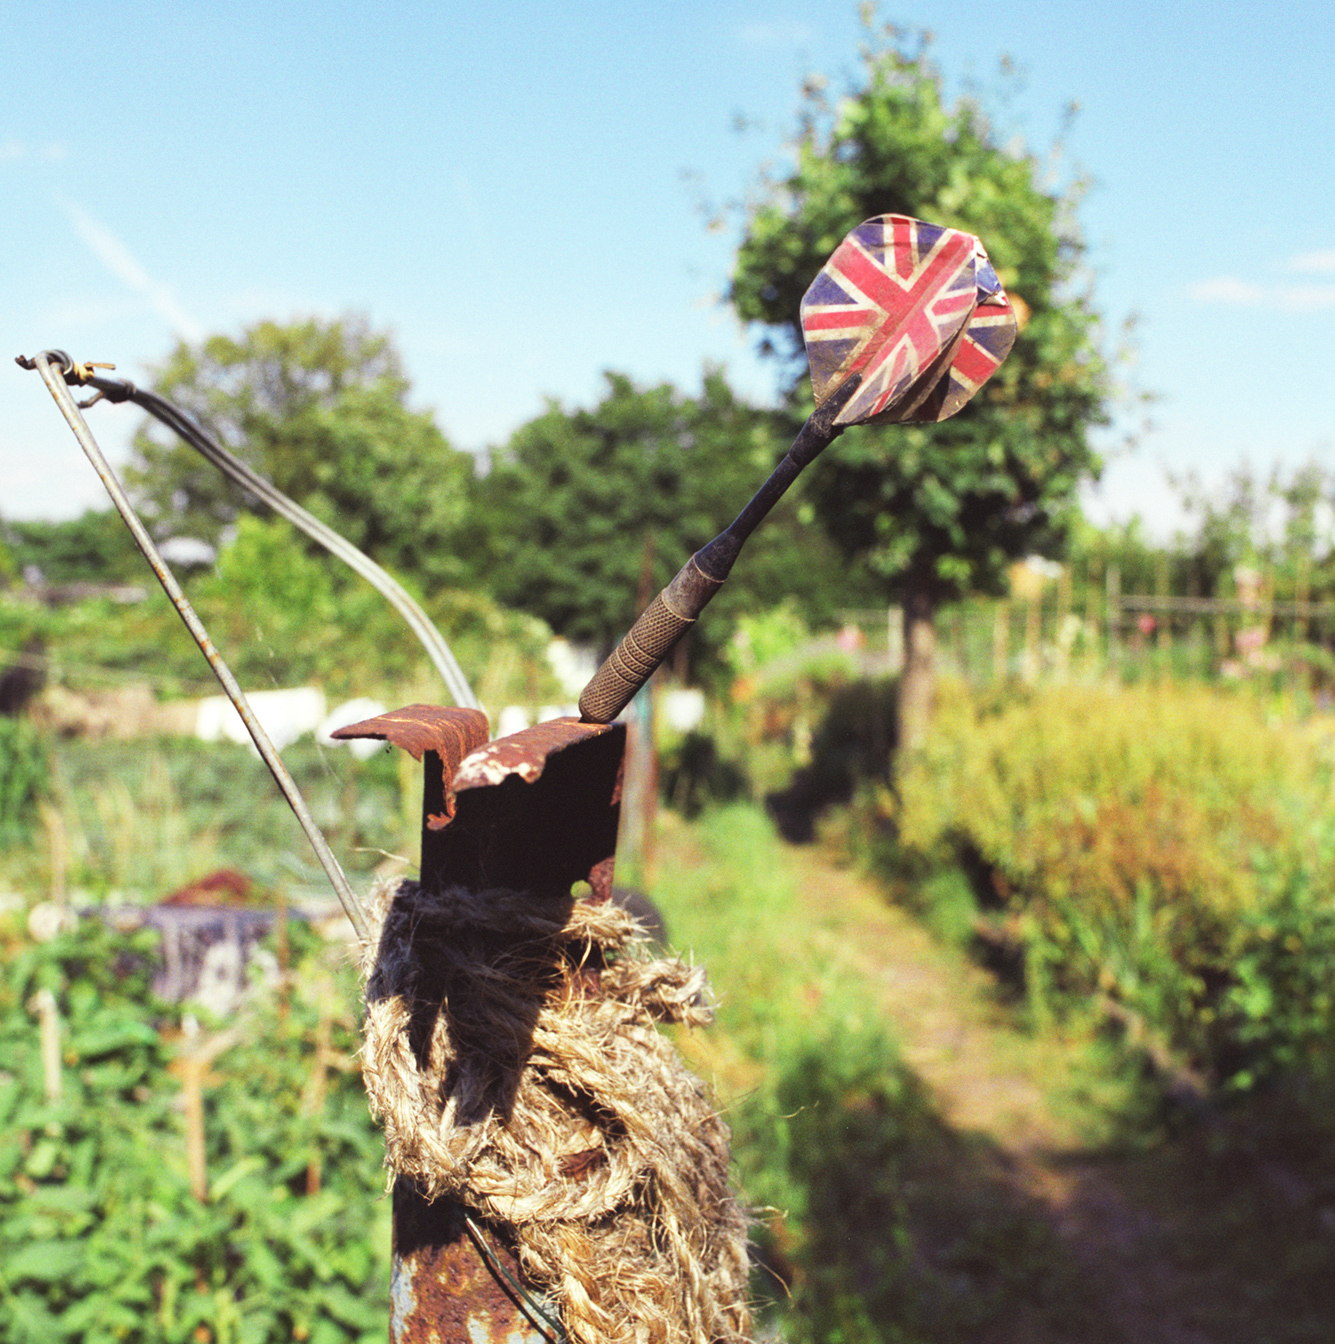 London_Portrait_Photographer_Inner_City_Landscapes_allotment+sculpture+1-4.jpg